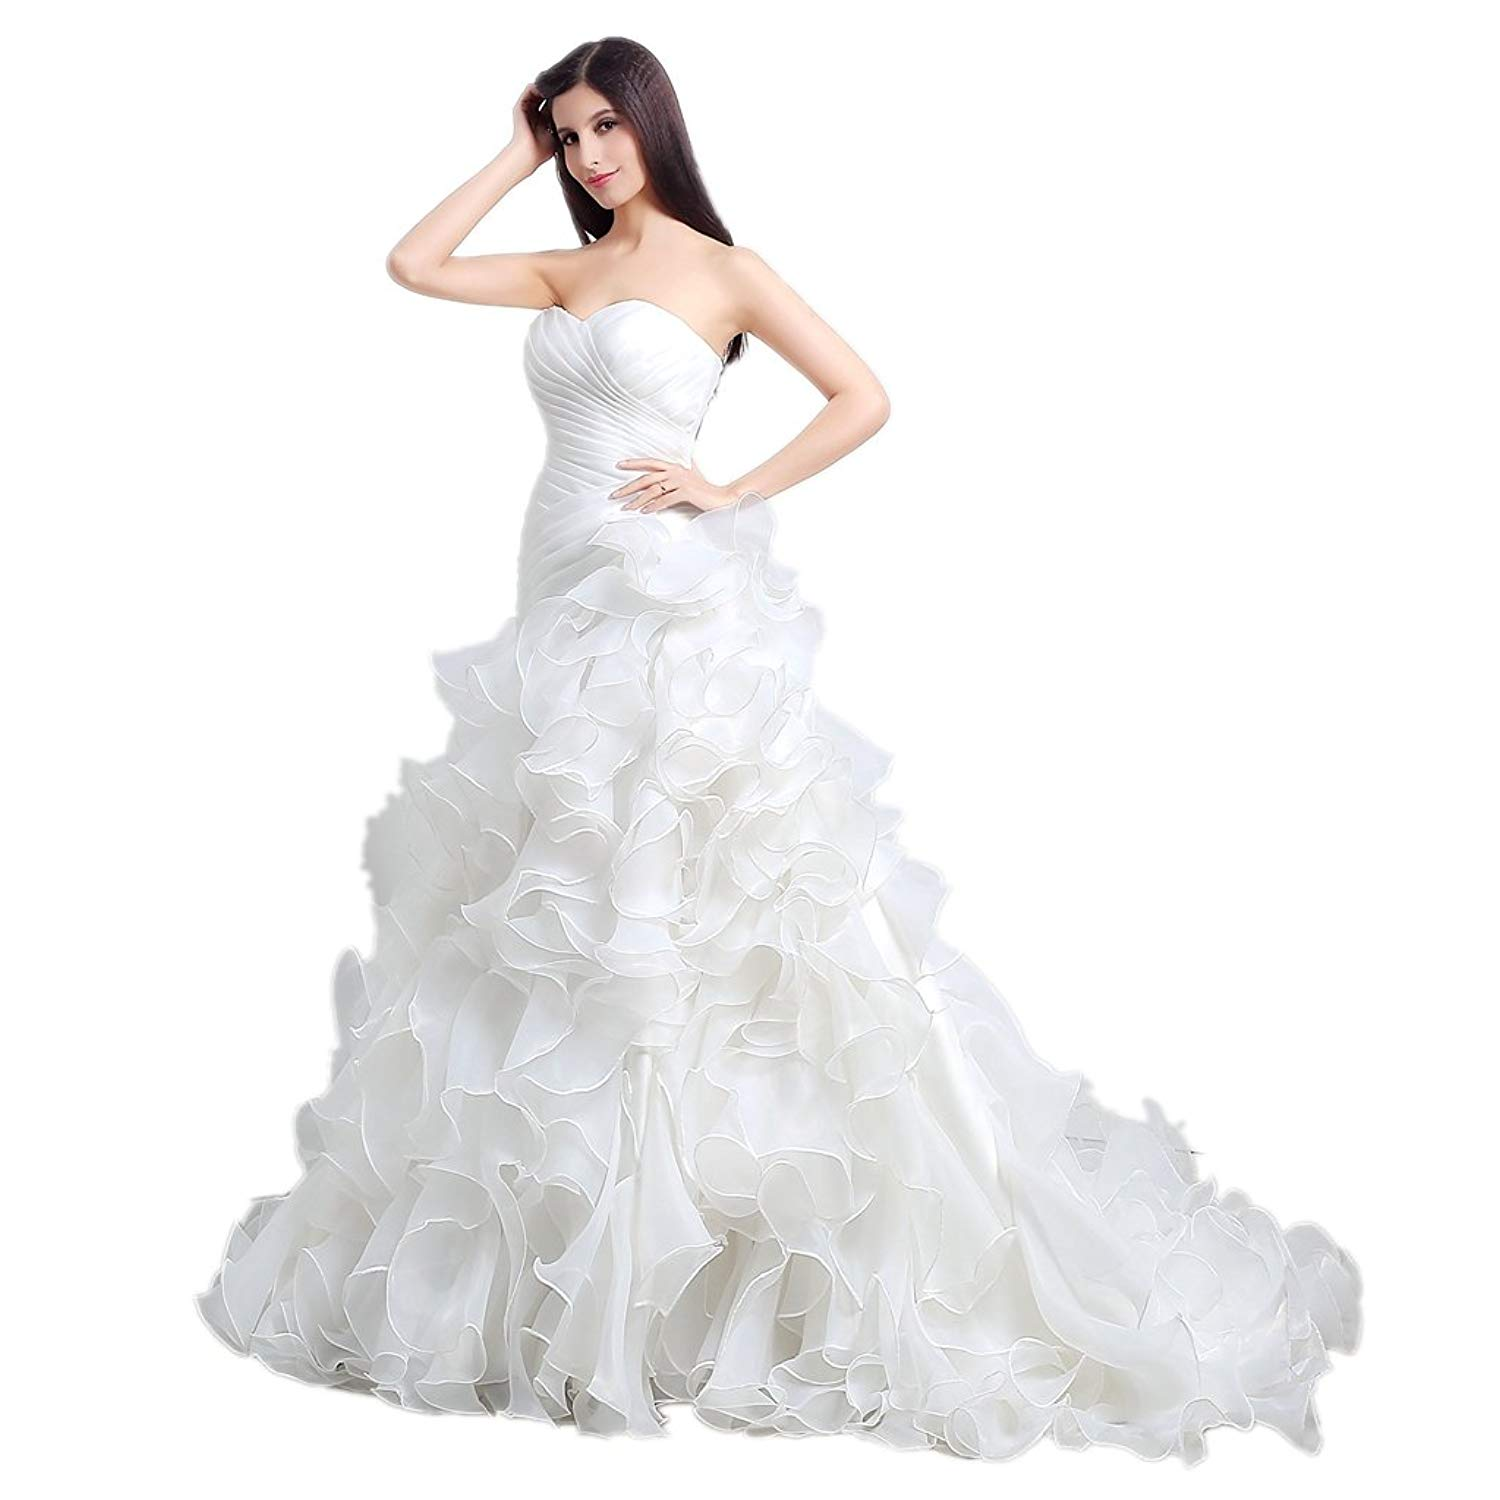 MLT Women's Organza White Ivory Layers Wedding Dresses Bridal Gown